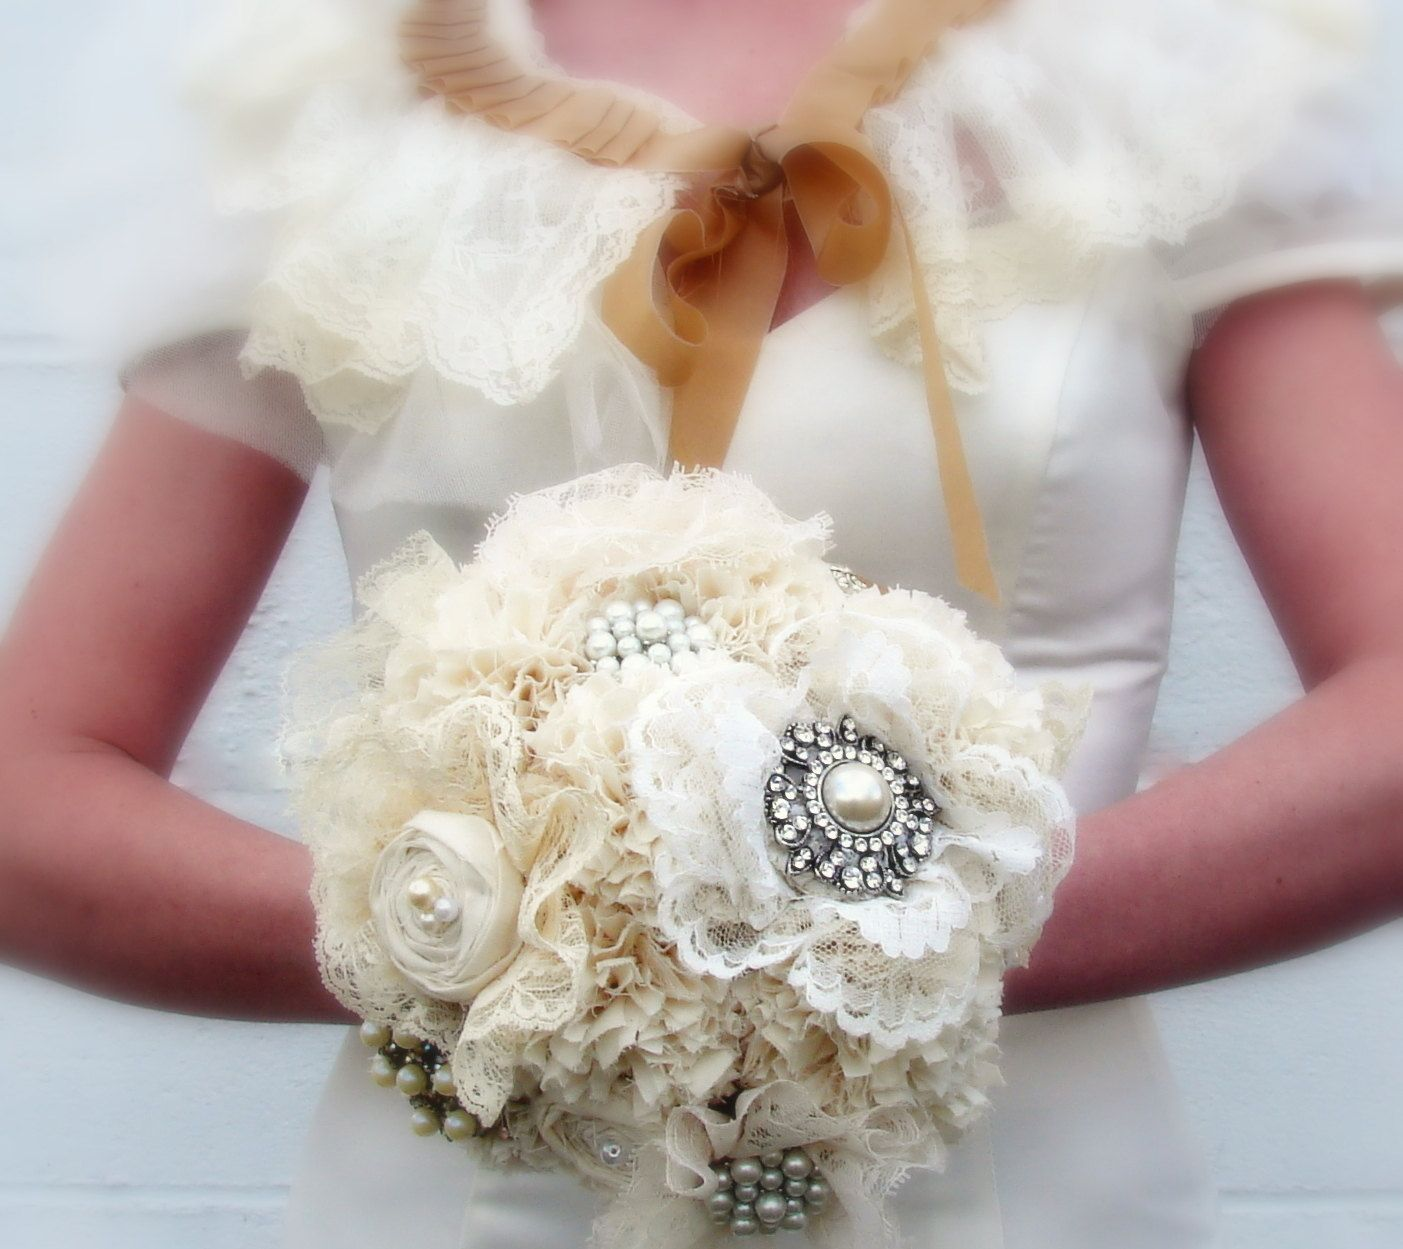 Custom Fabric Flower Bouquet With Rhinestone Brooches And Lace